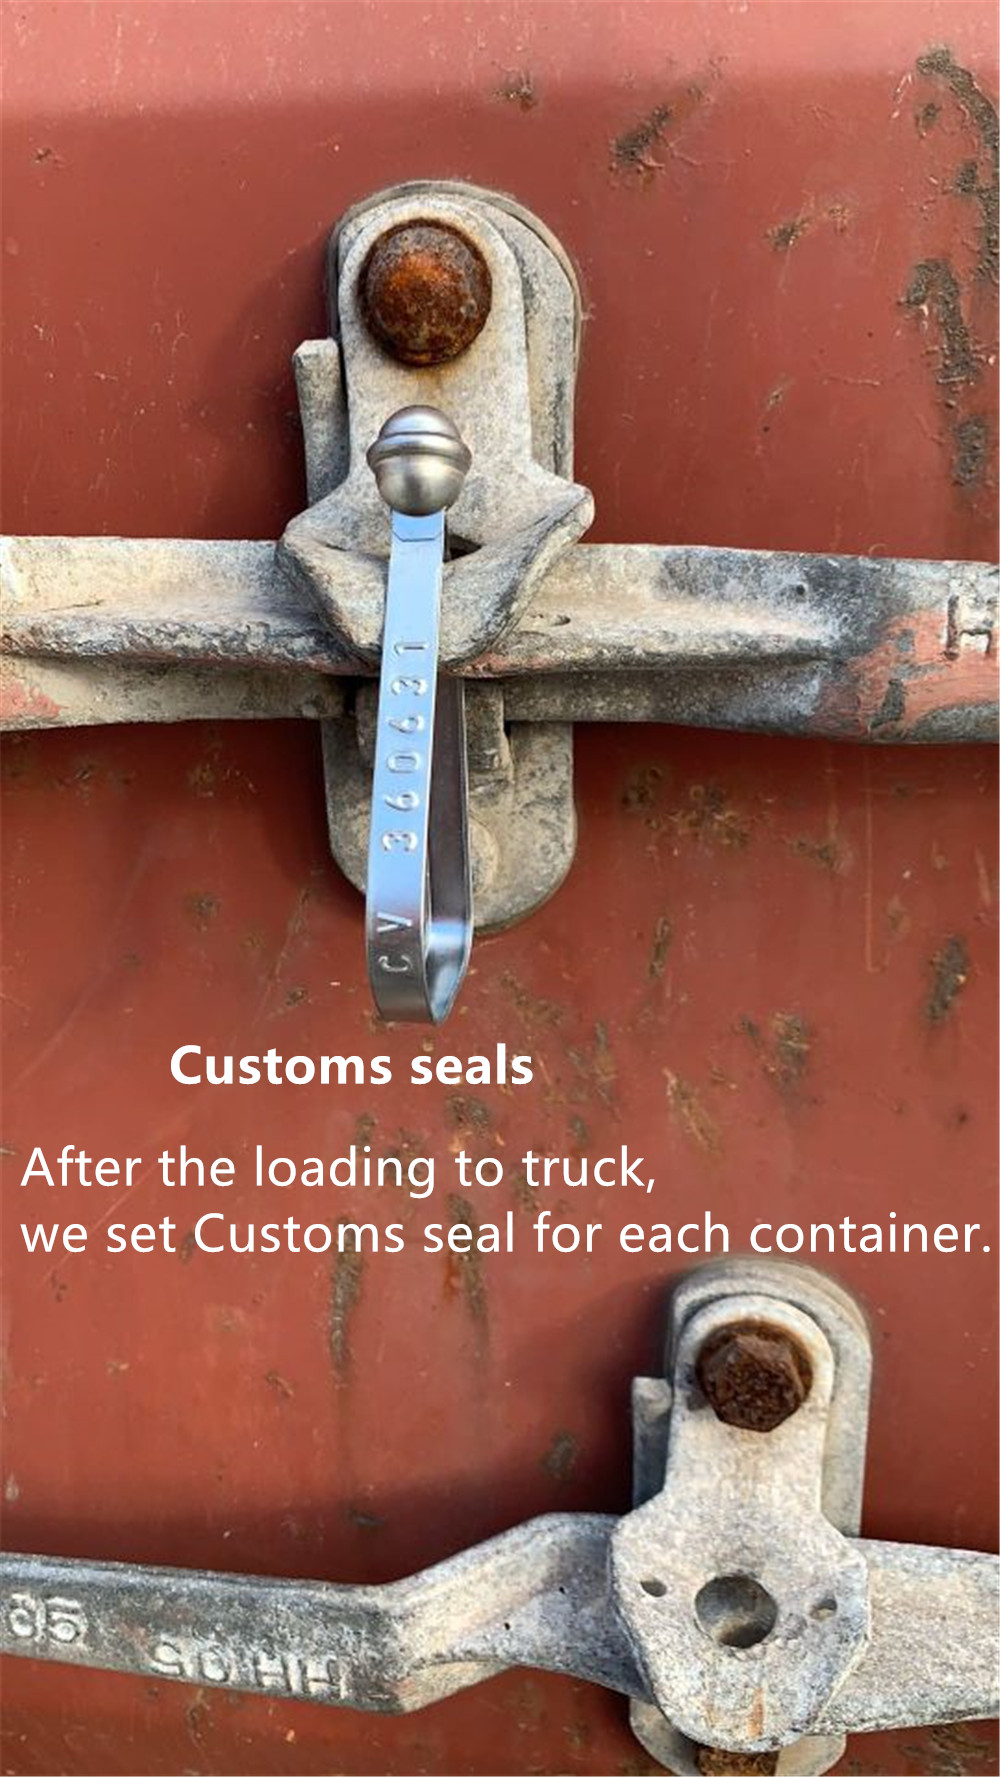 After loading to truck, we set customs seal for each container.